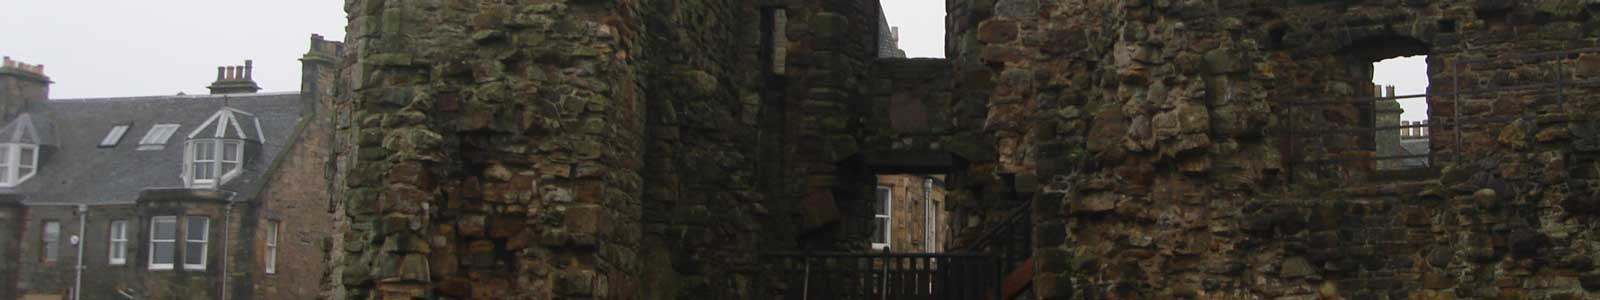 Invading St. Andrews Castle